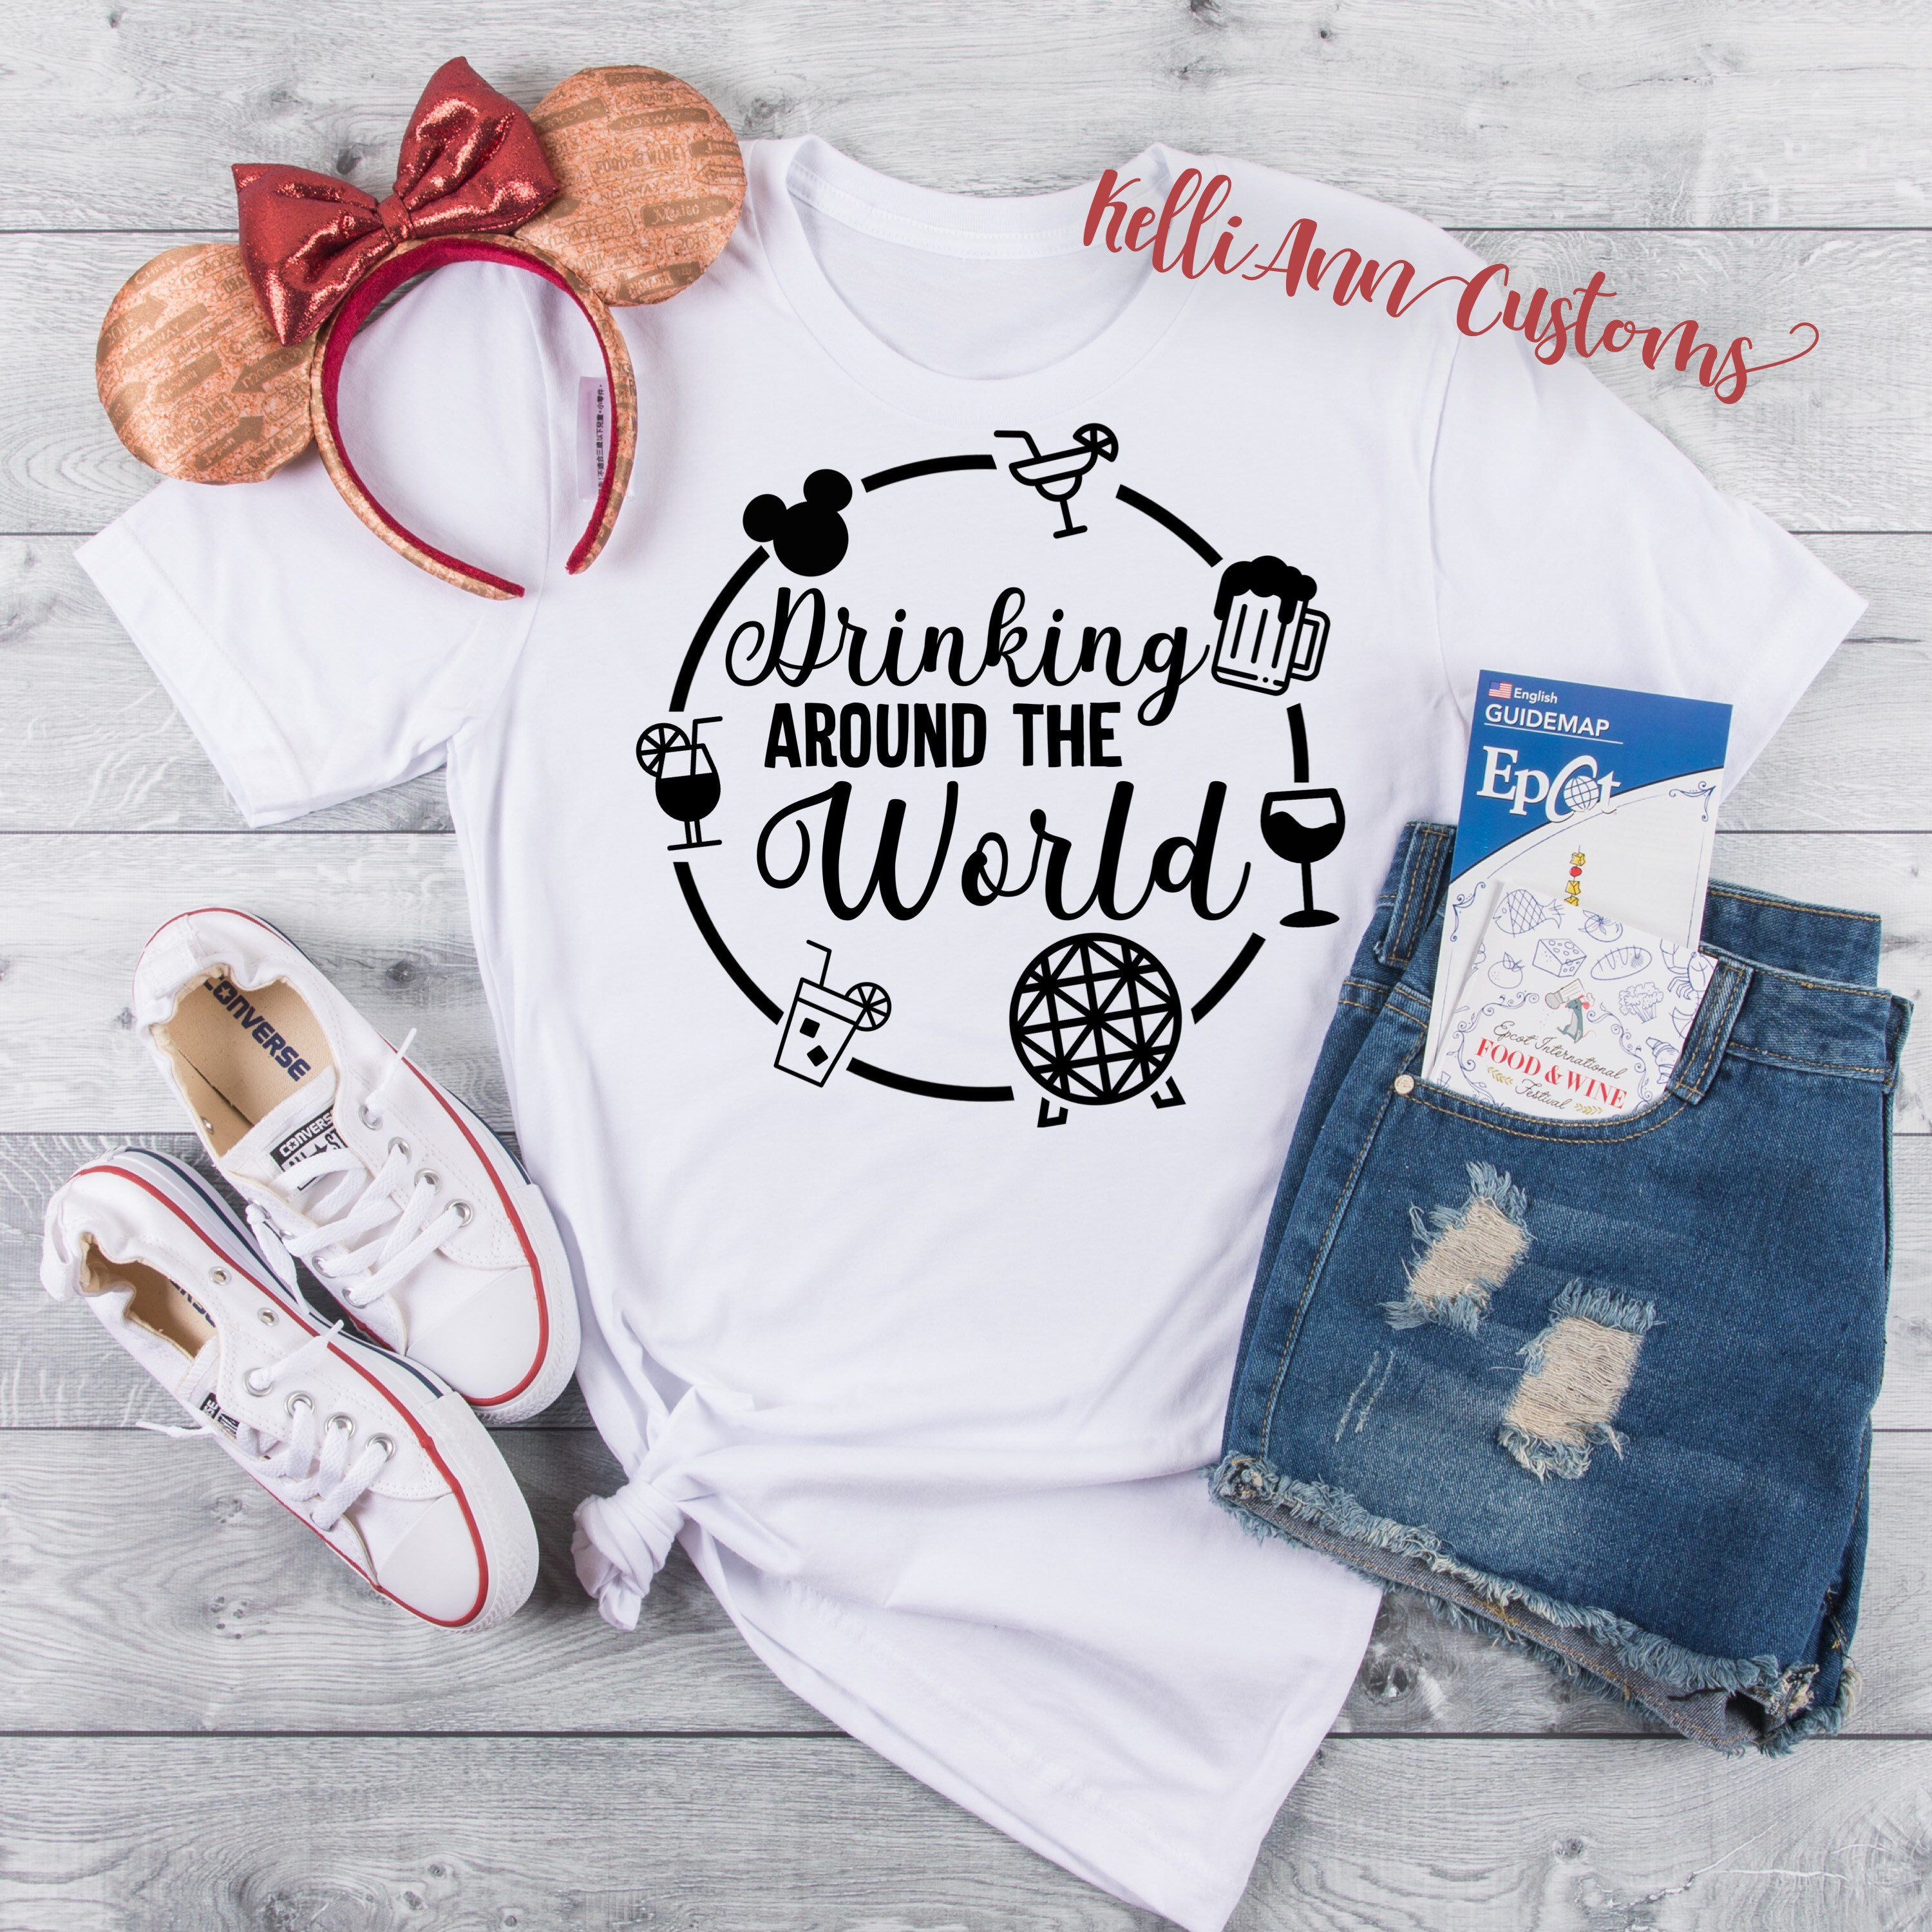 Food and Wine Conquering The World Disney Trip. Drinking Around The World Vacation Shirts Epcot Shirt Disney Drinking Shirt